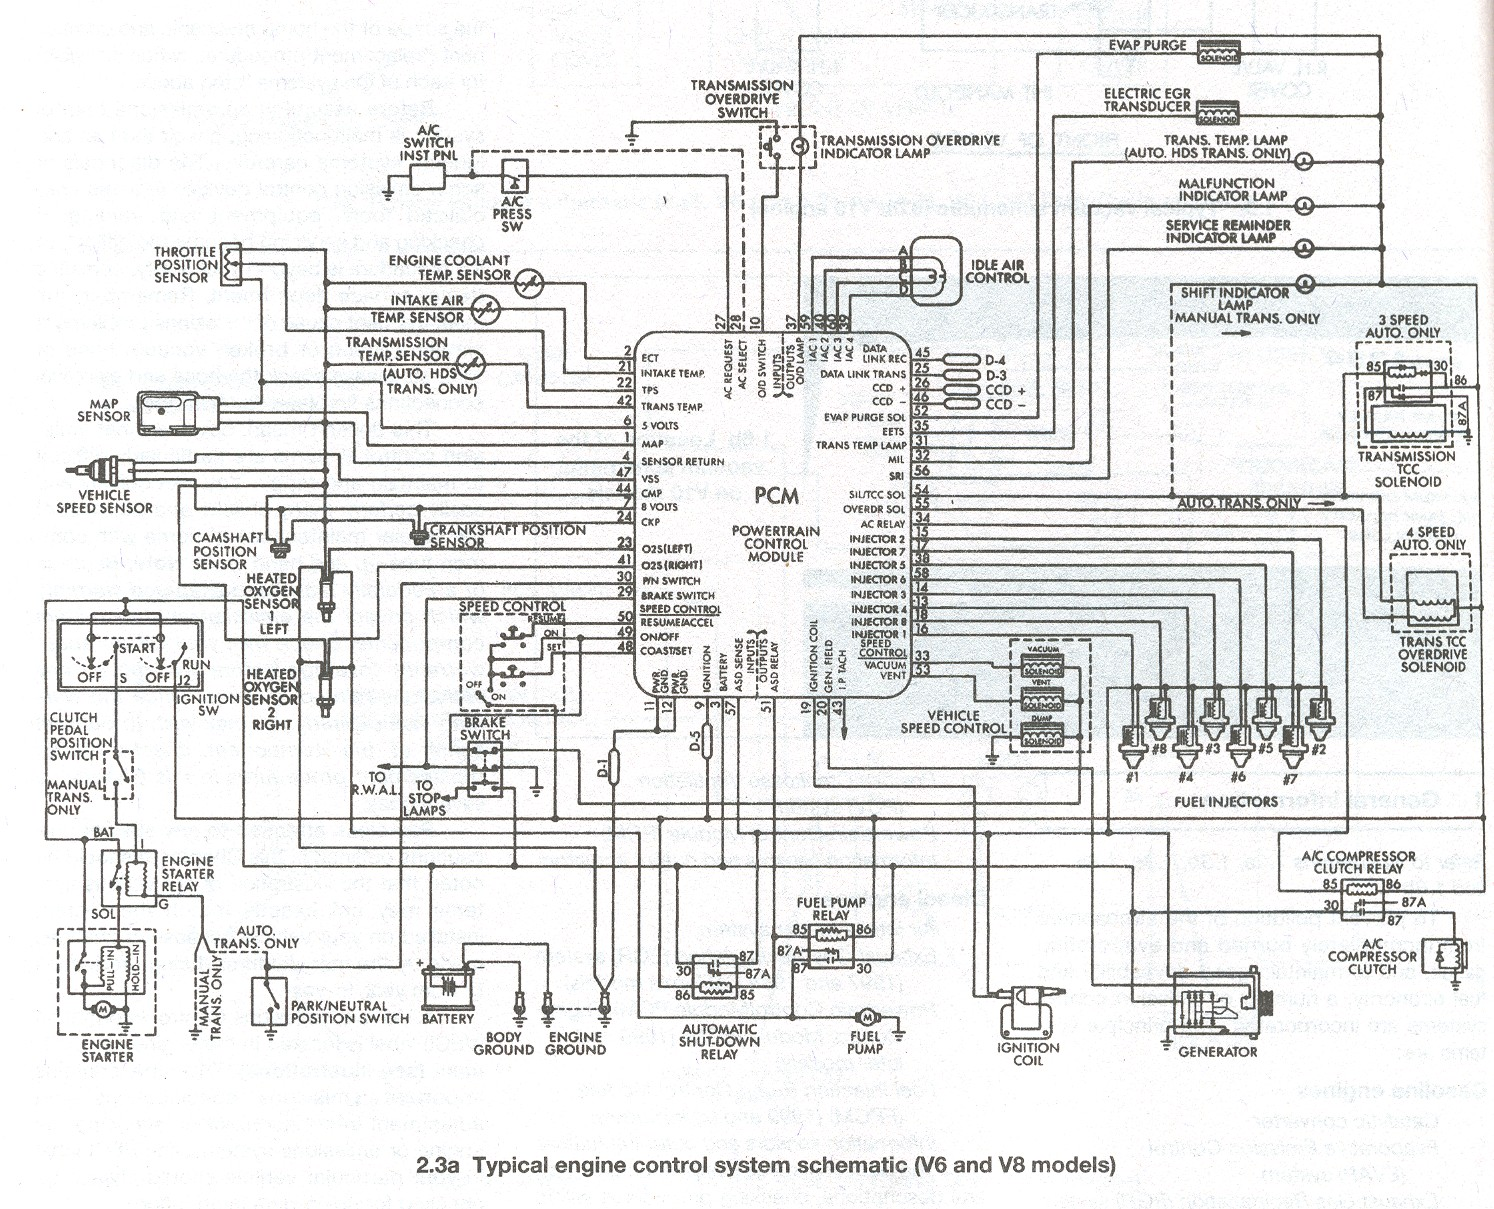 1970 Dodge Challenger Wiring Diagram. Dodge. Wiring